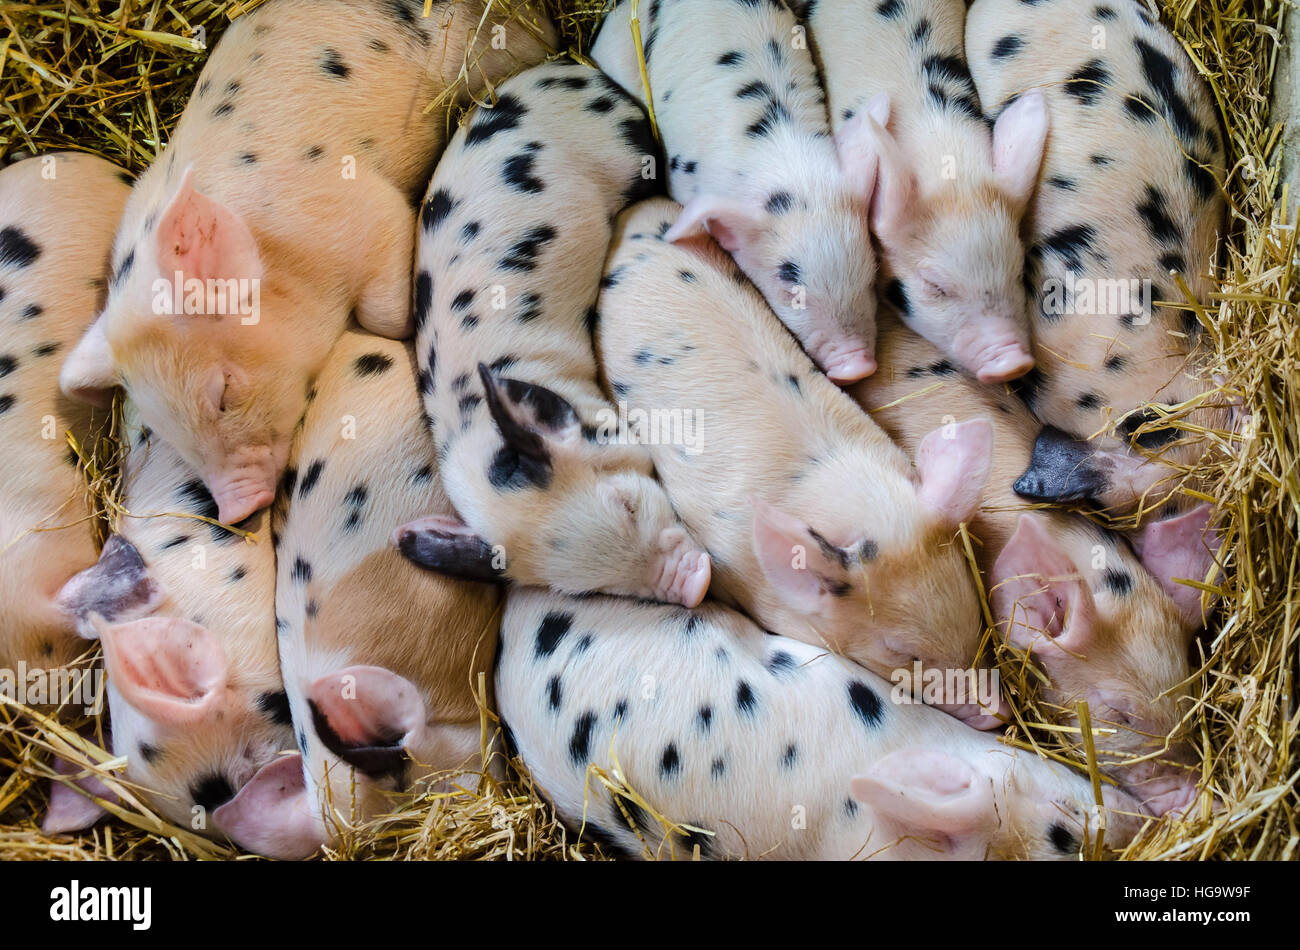 gloucester-old-spot-piglets-snuggle-up-together-in-a-barn-HG9W9F.jpg